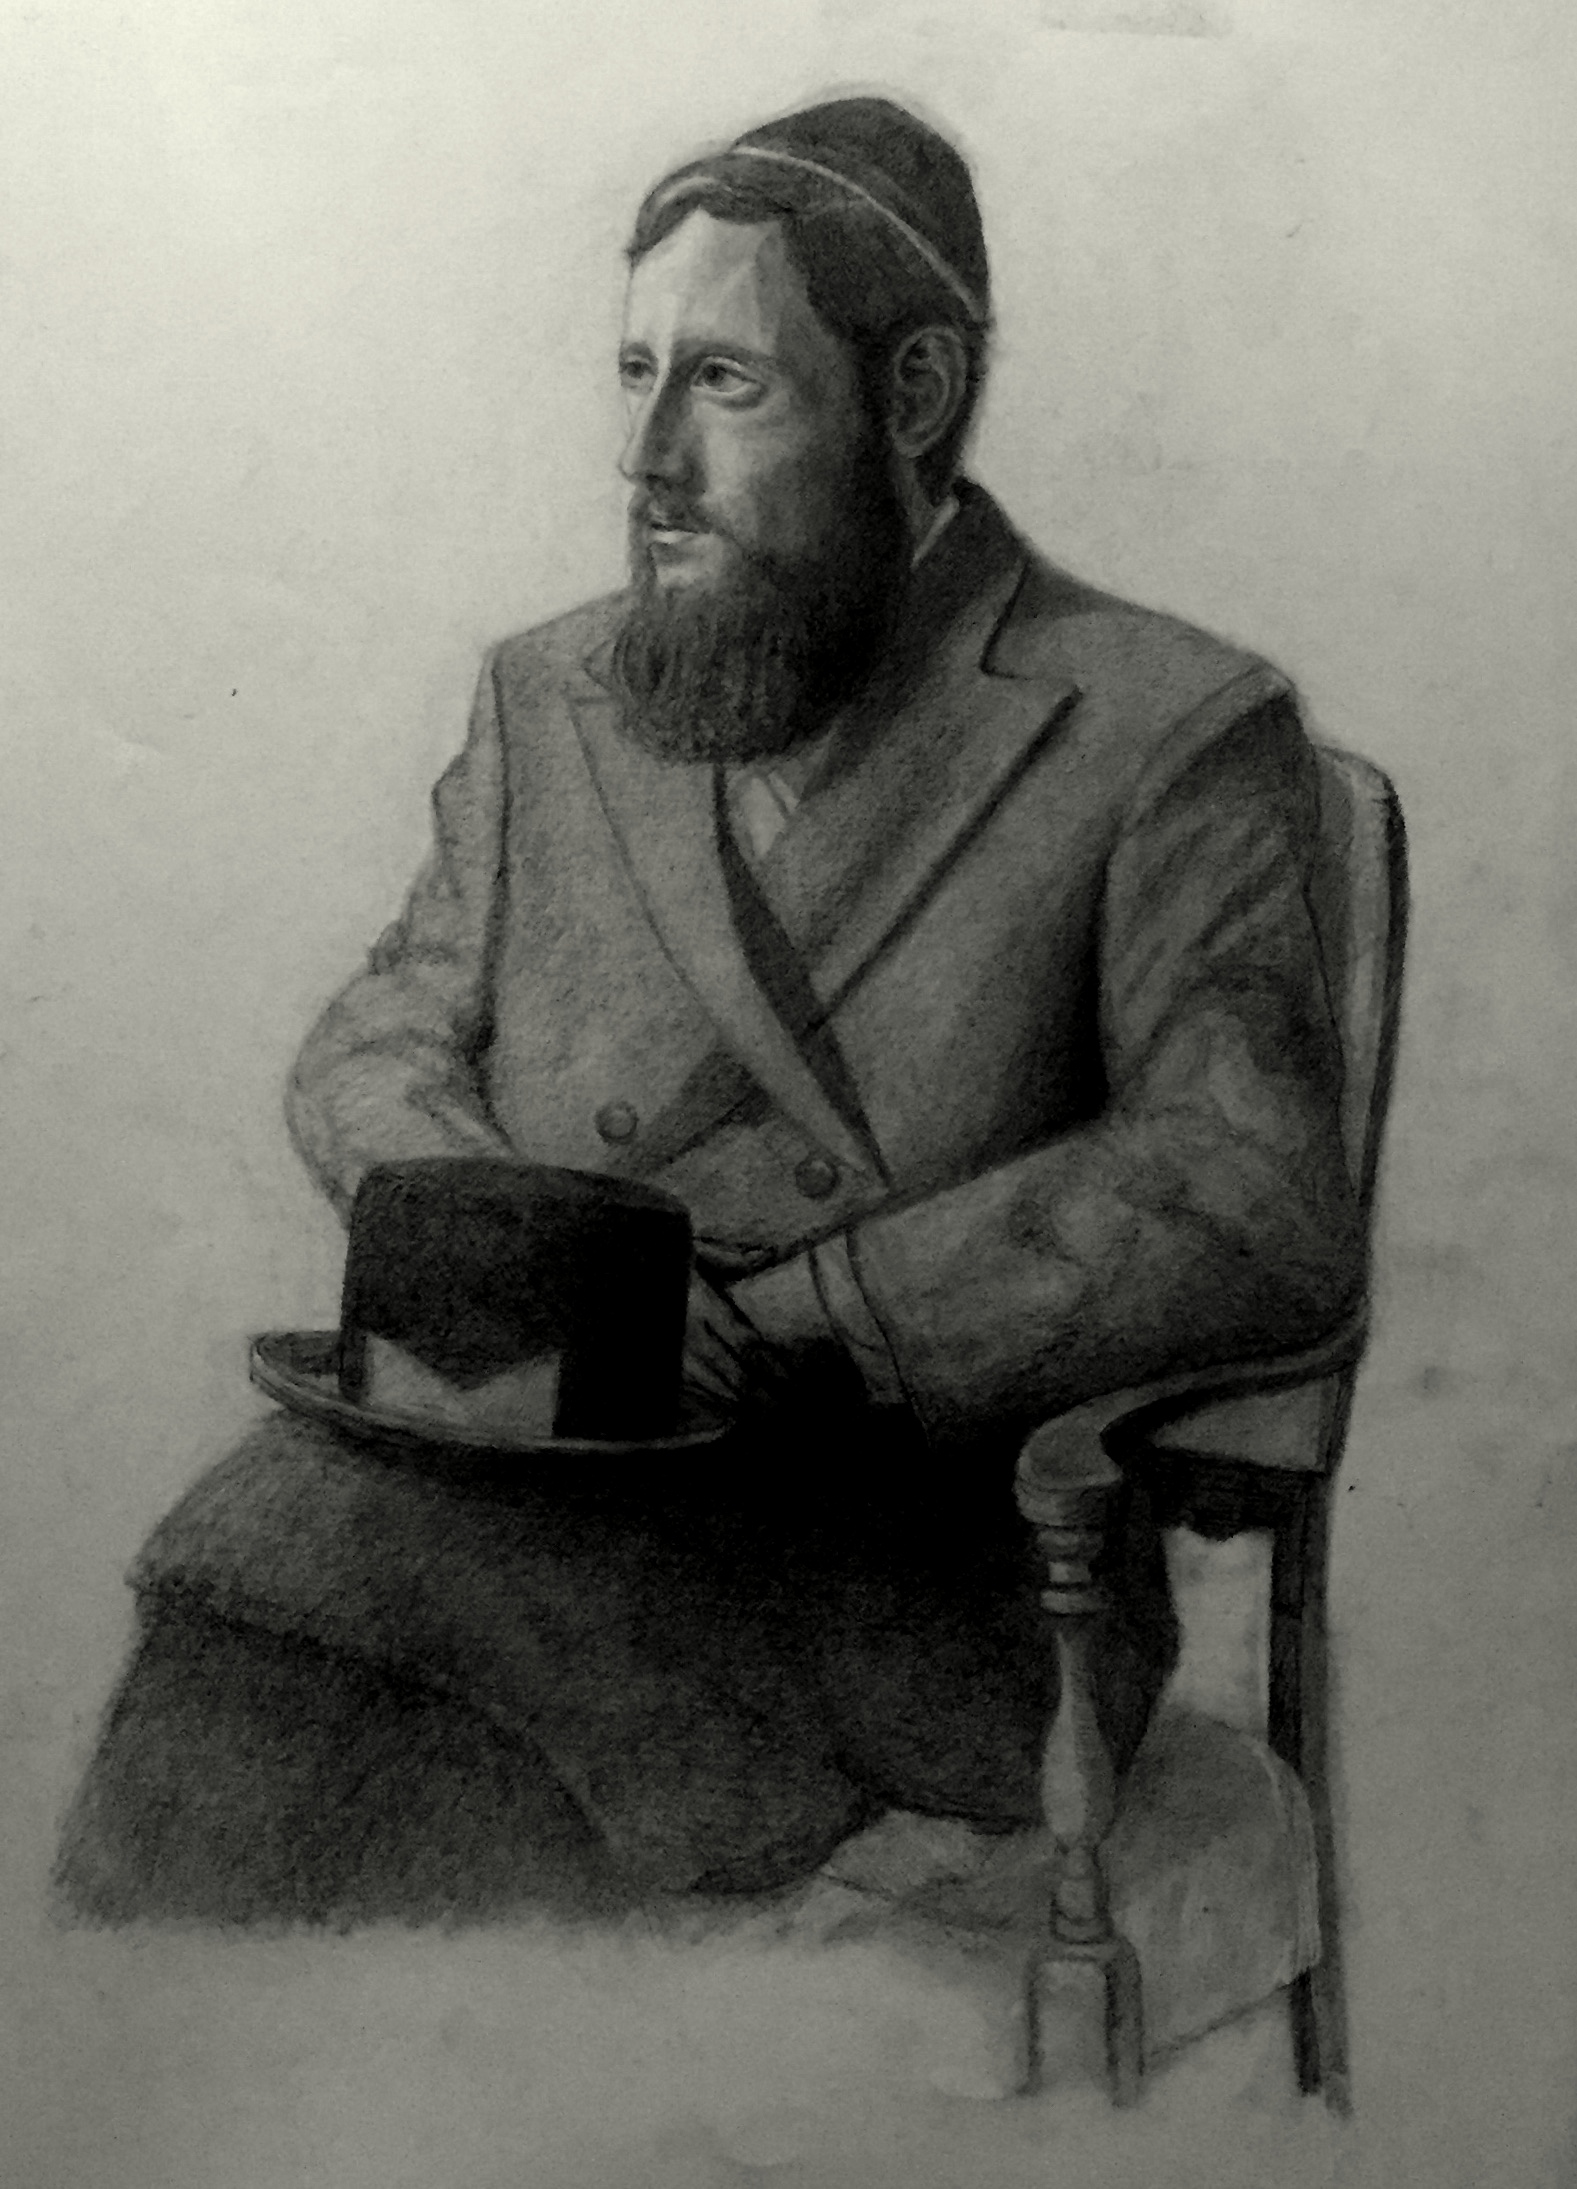 Hasidic Man with a Hat